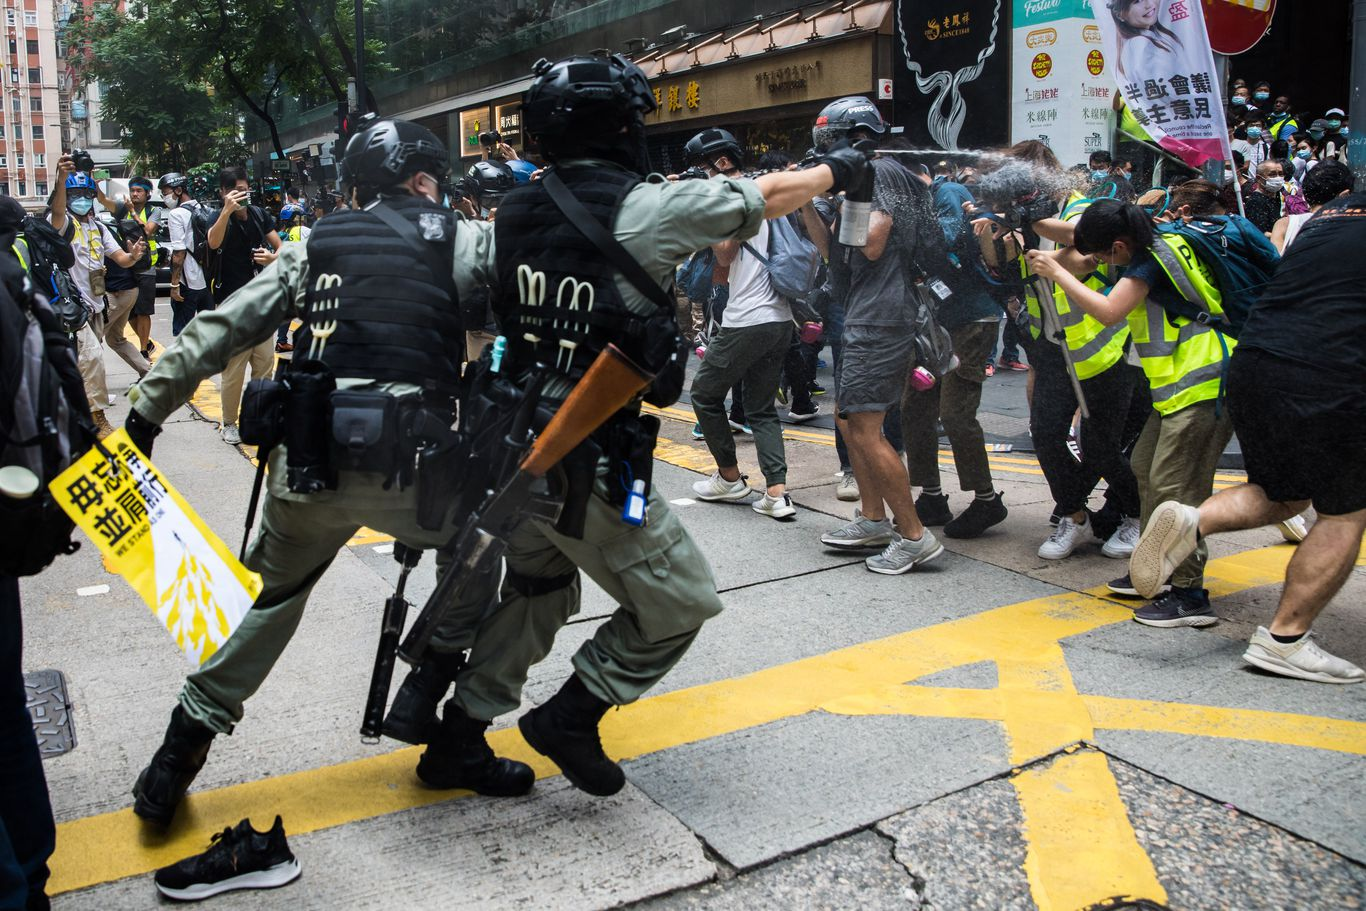 Hong Kong police make first security law arrest thumbnail